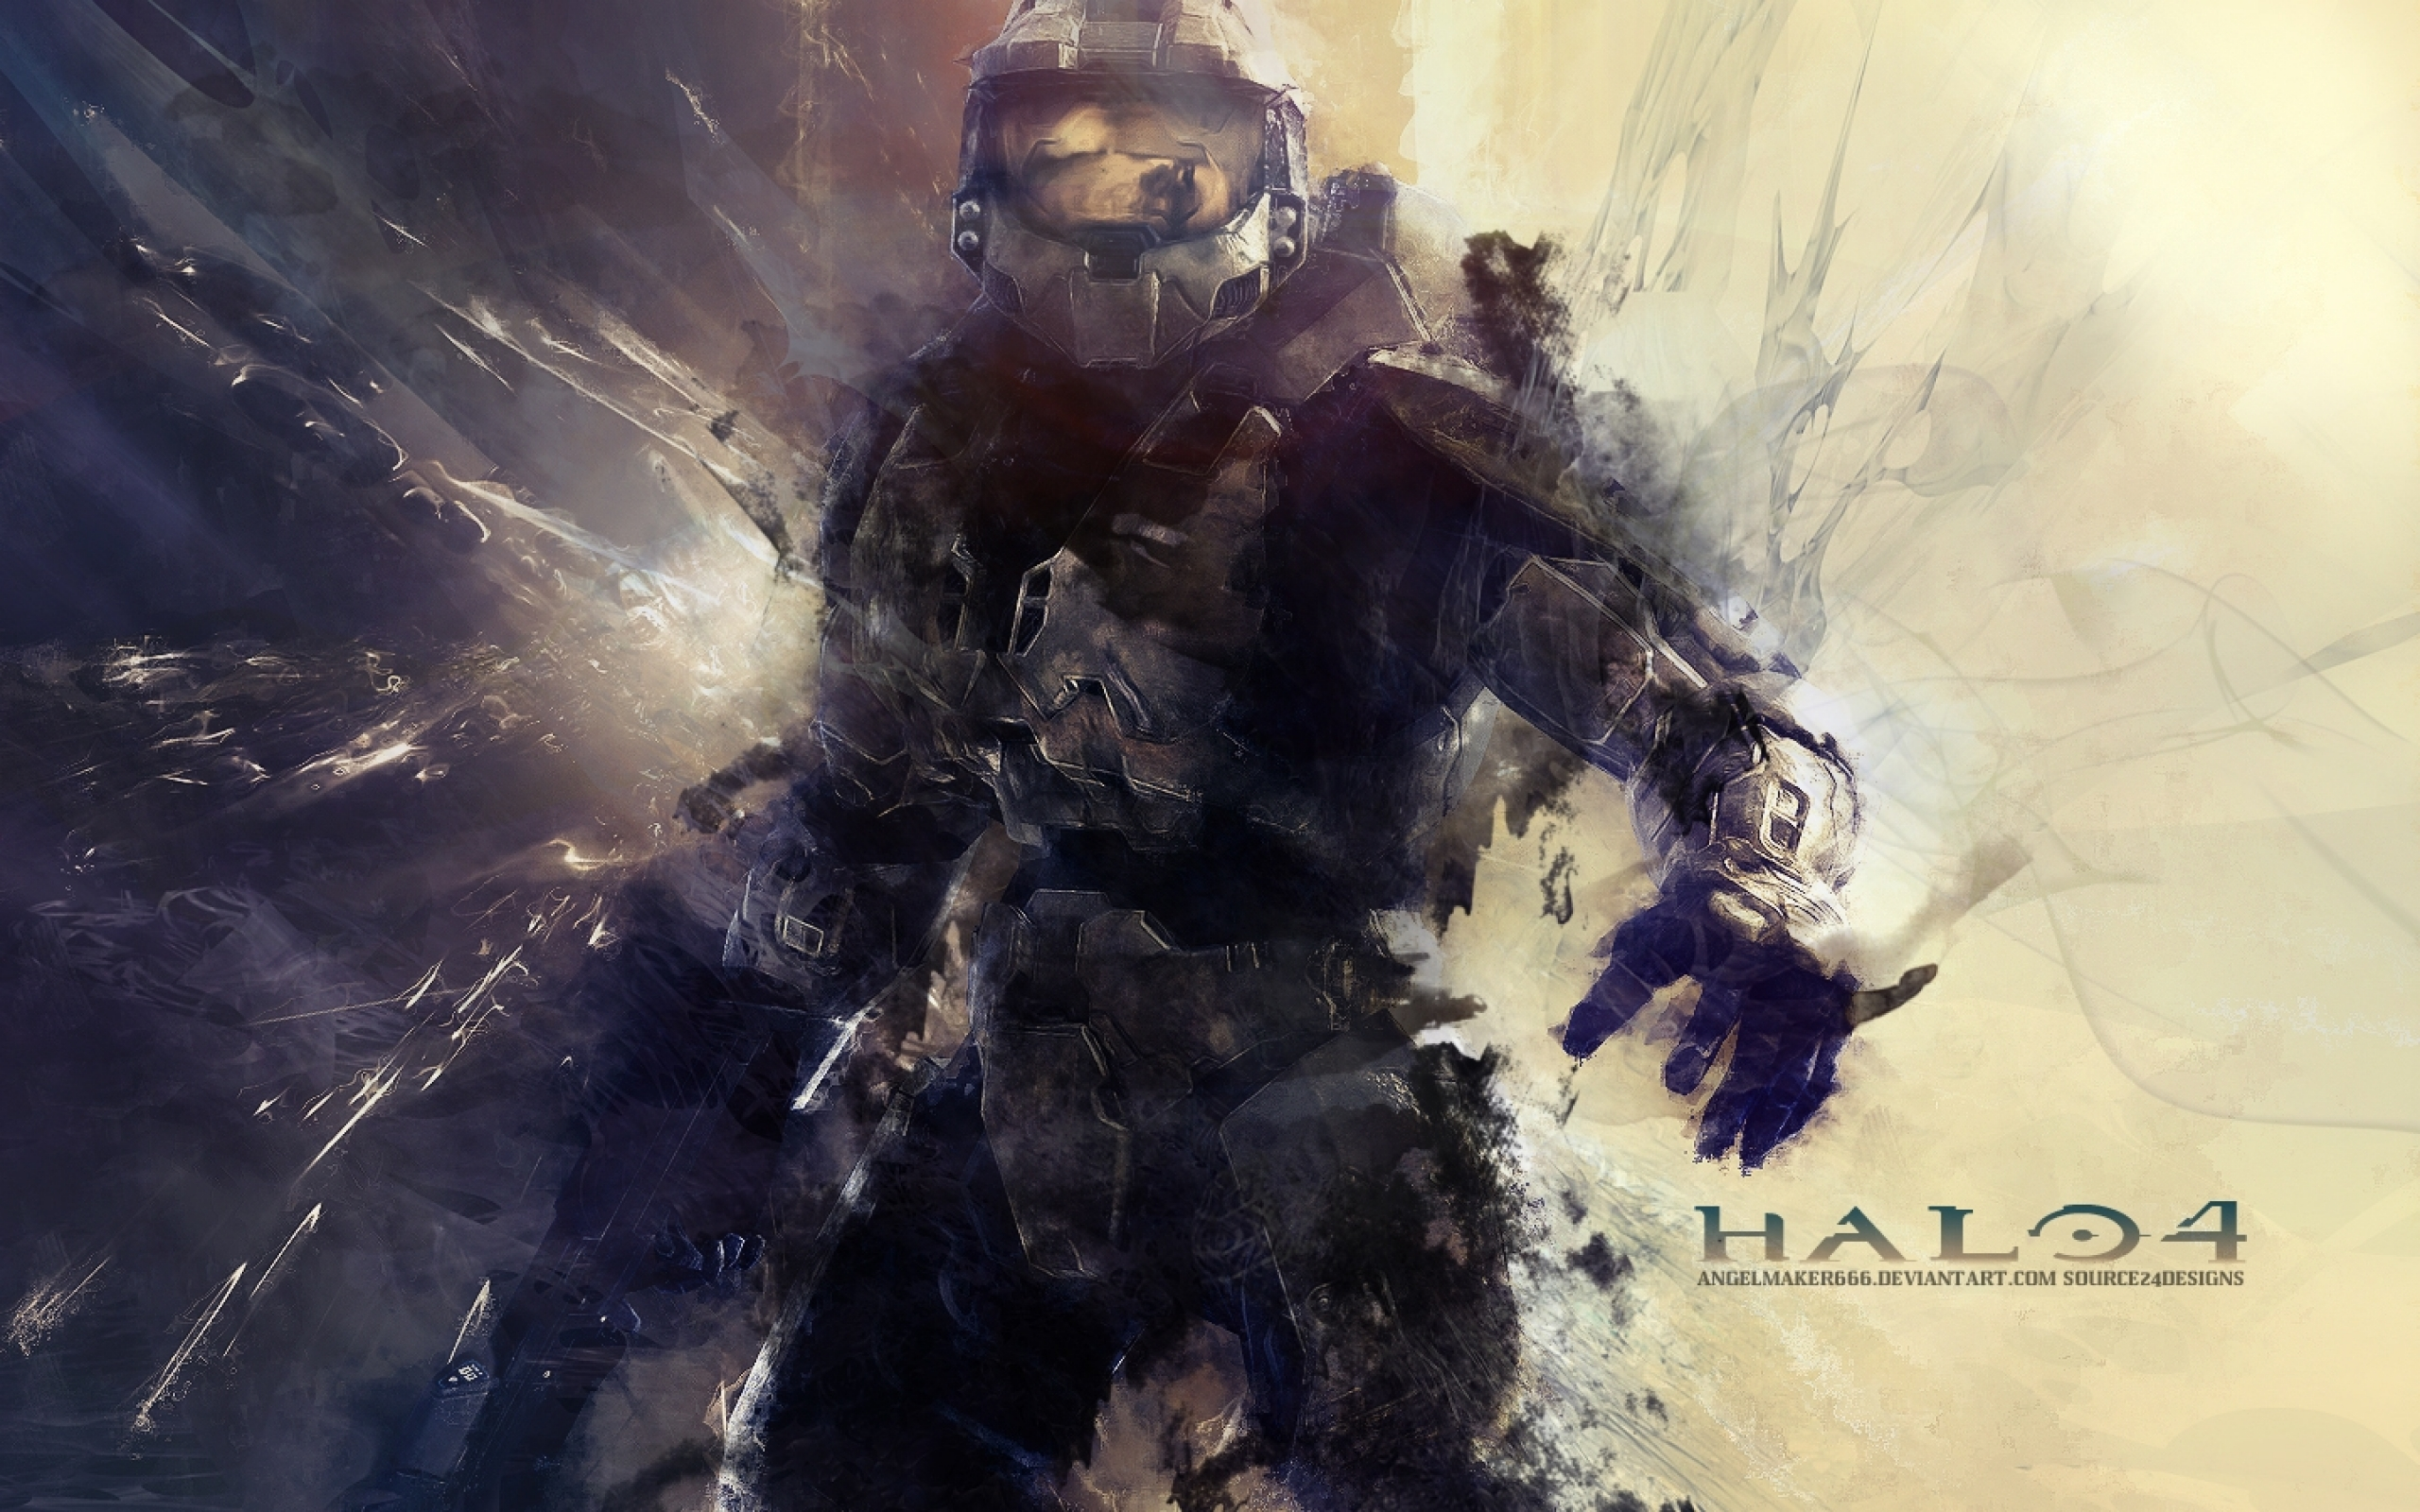 Cool Halo 4 Wallpaper